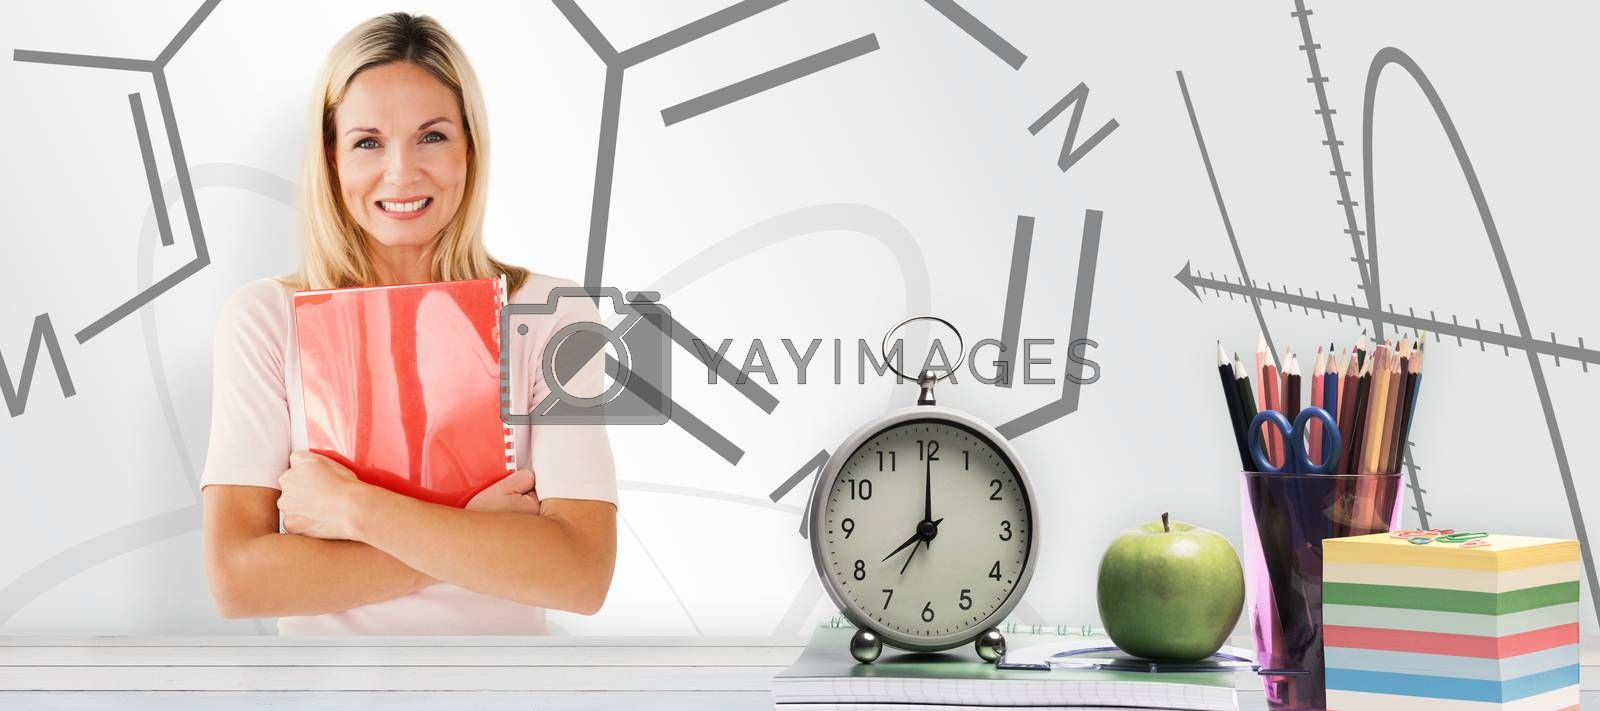 Mature student smiling against white background with vignette